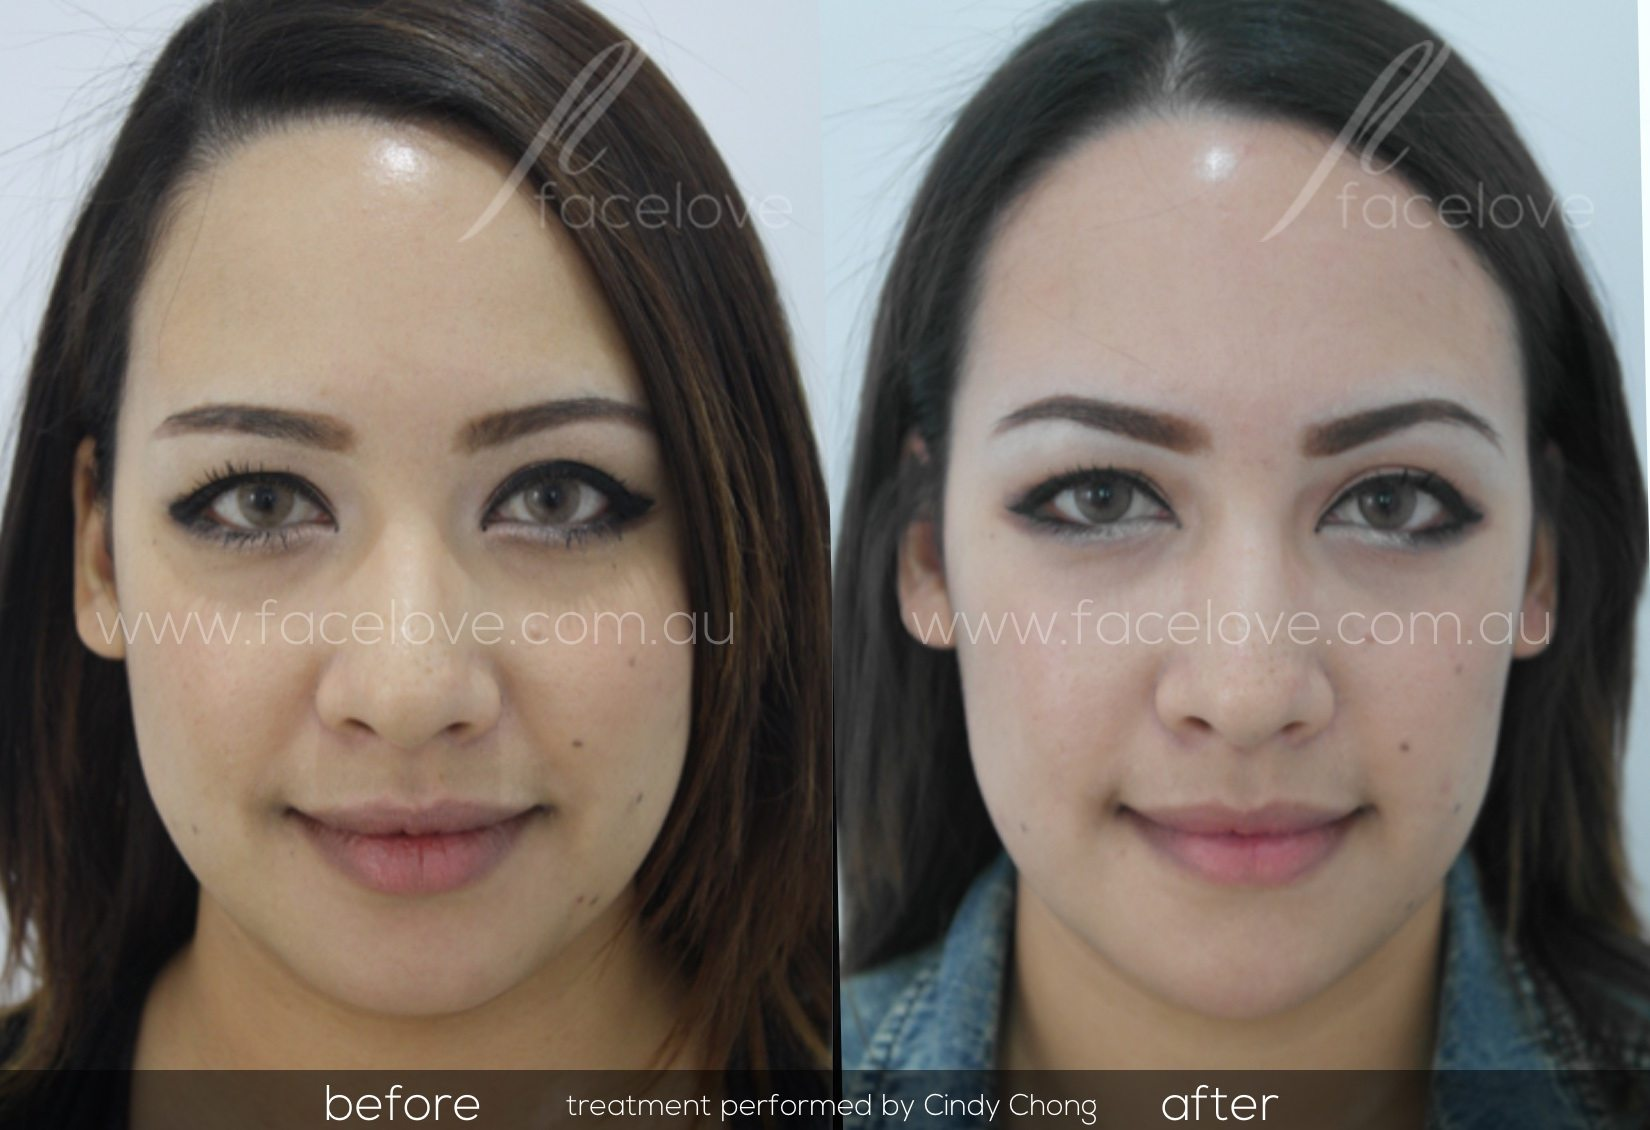 Facial Reshaping And Facial Slimming Facelove